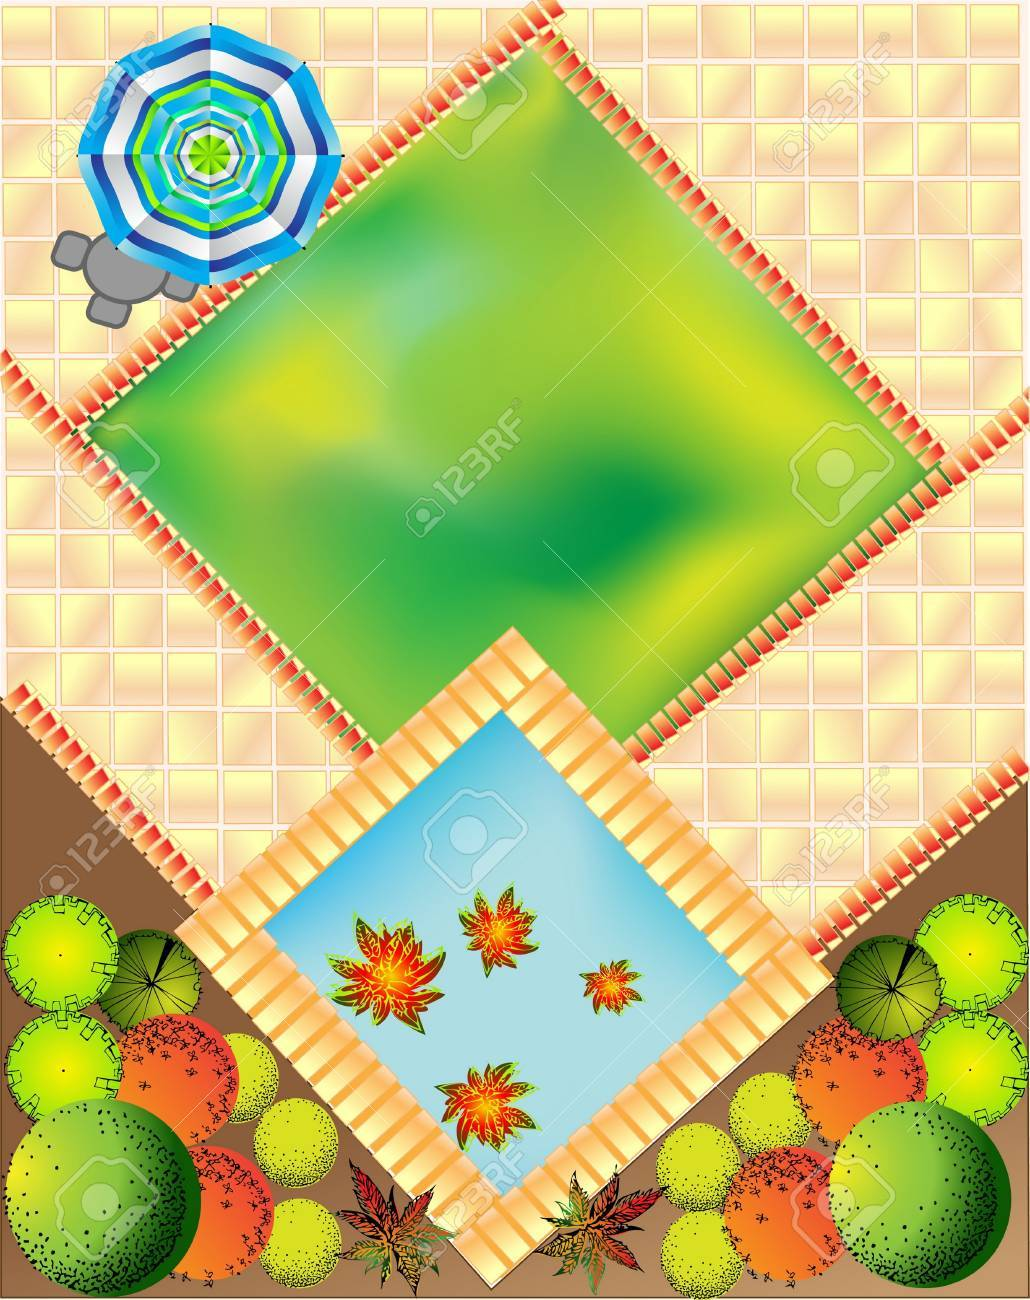 Plan of garden with plant symbols Stock Vector - 14002945